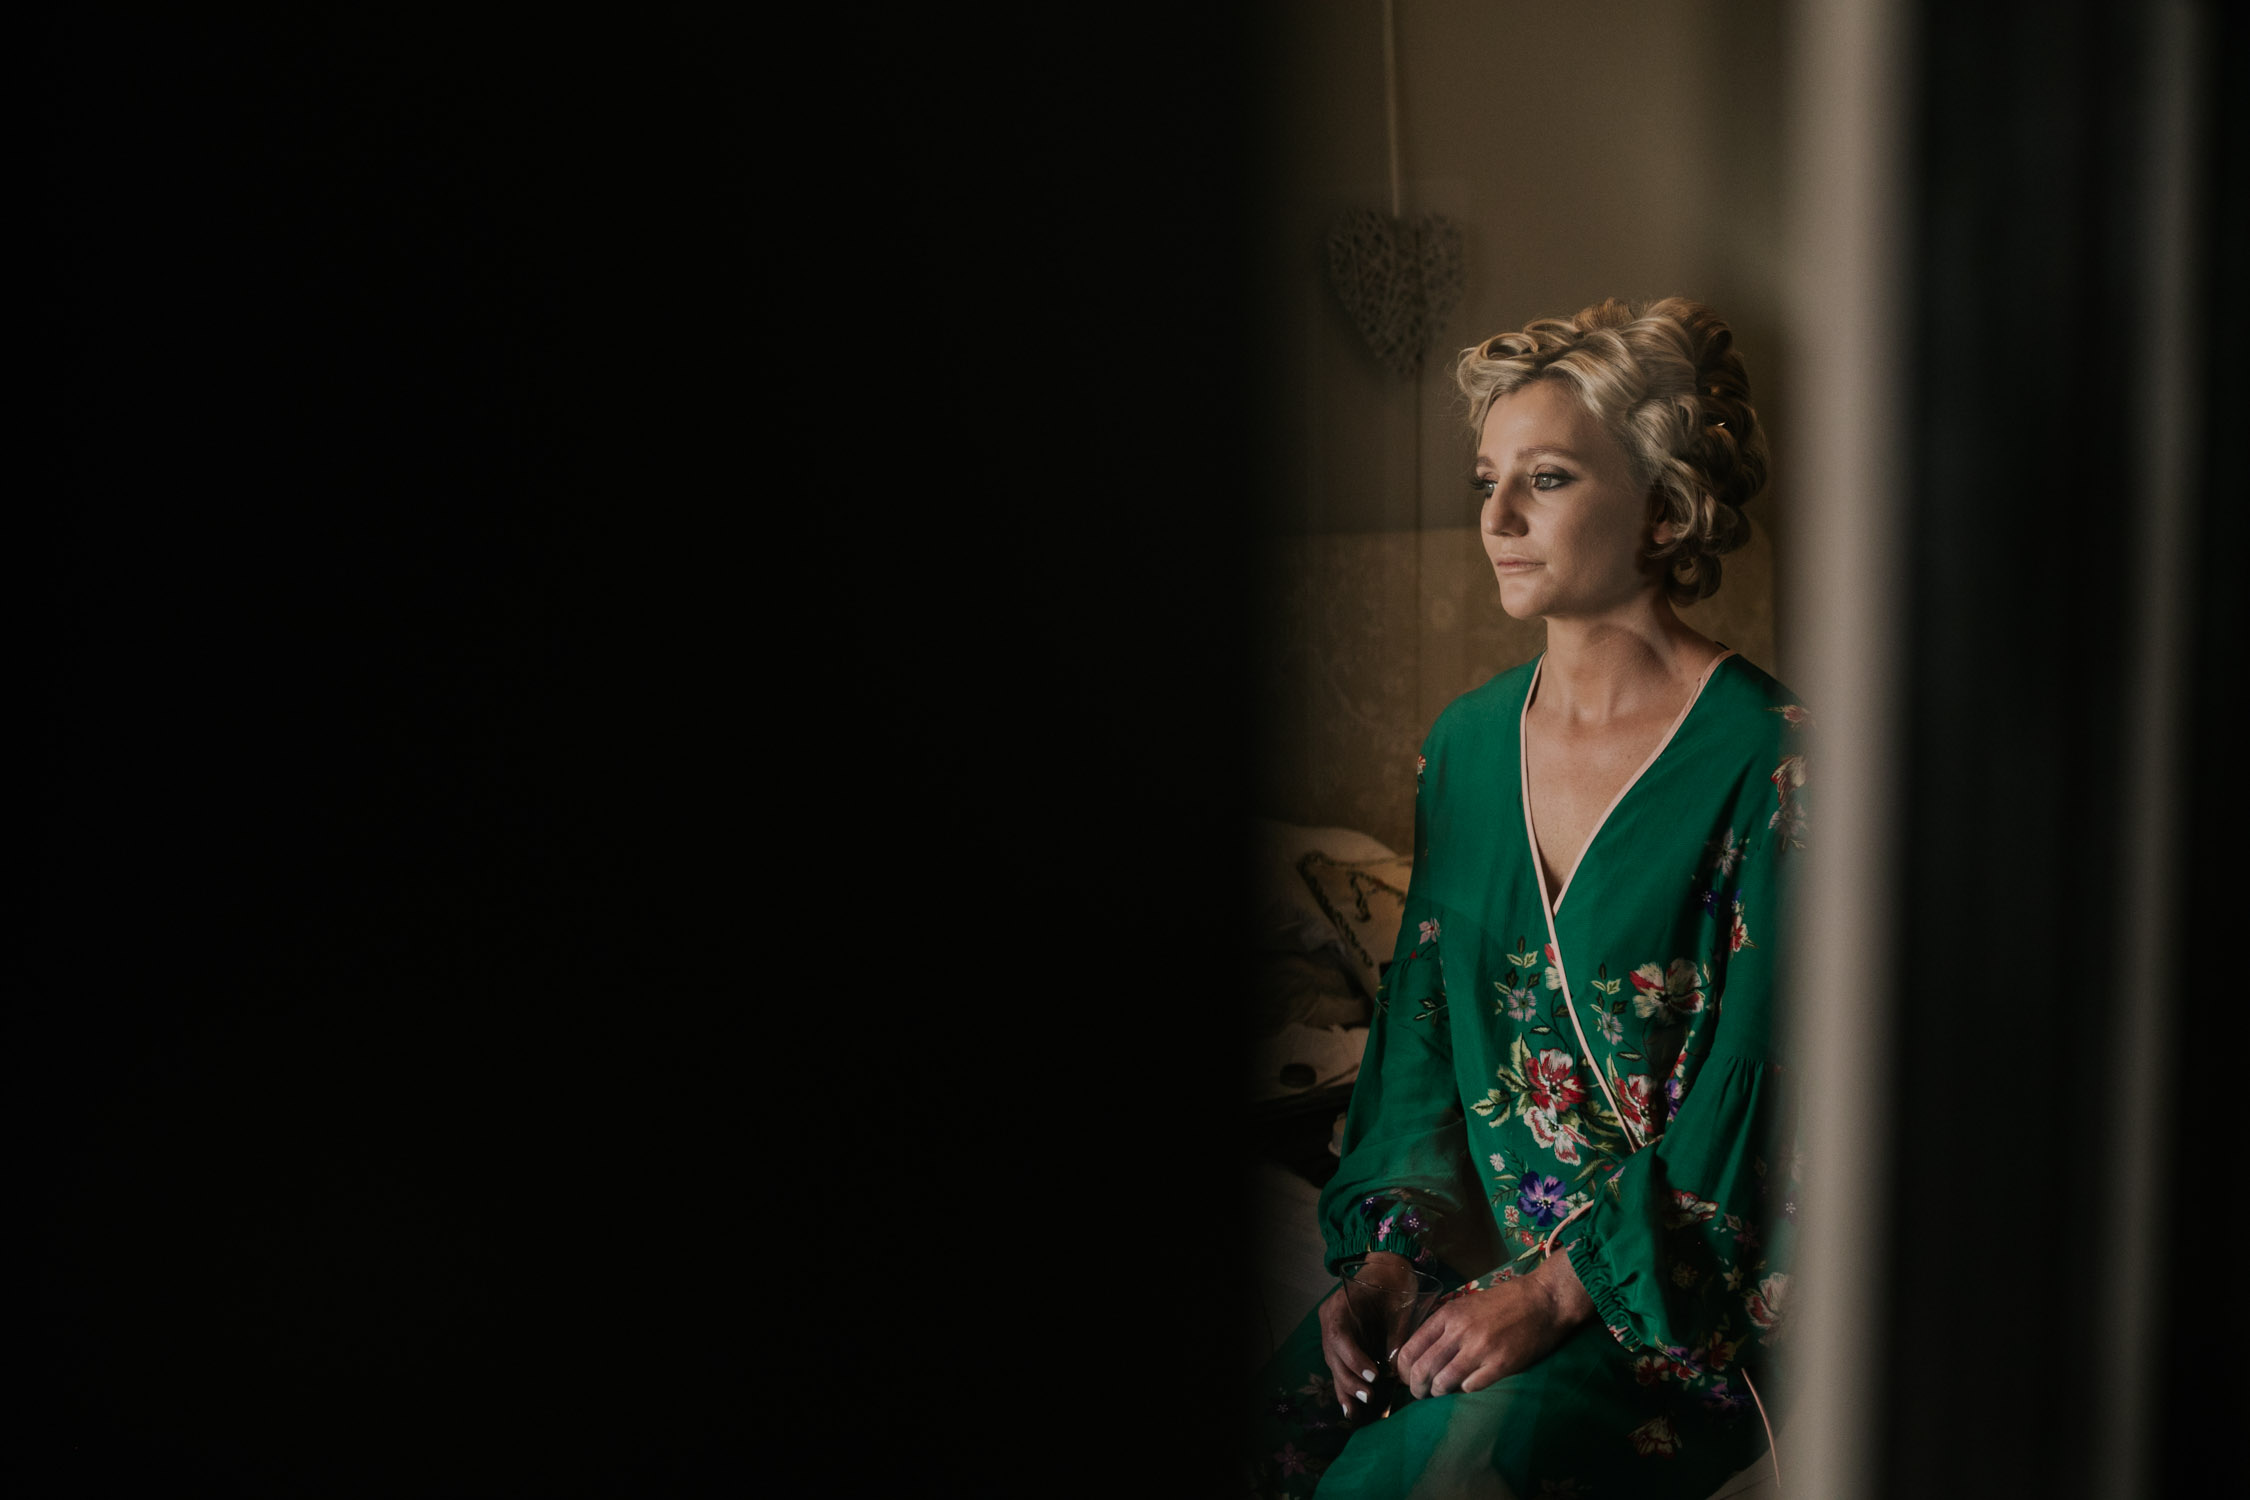 blonde bride sitting in a farm house with curlers in her hairs wearing a green Chinese dressing gown